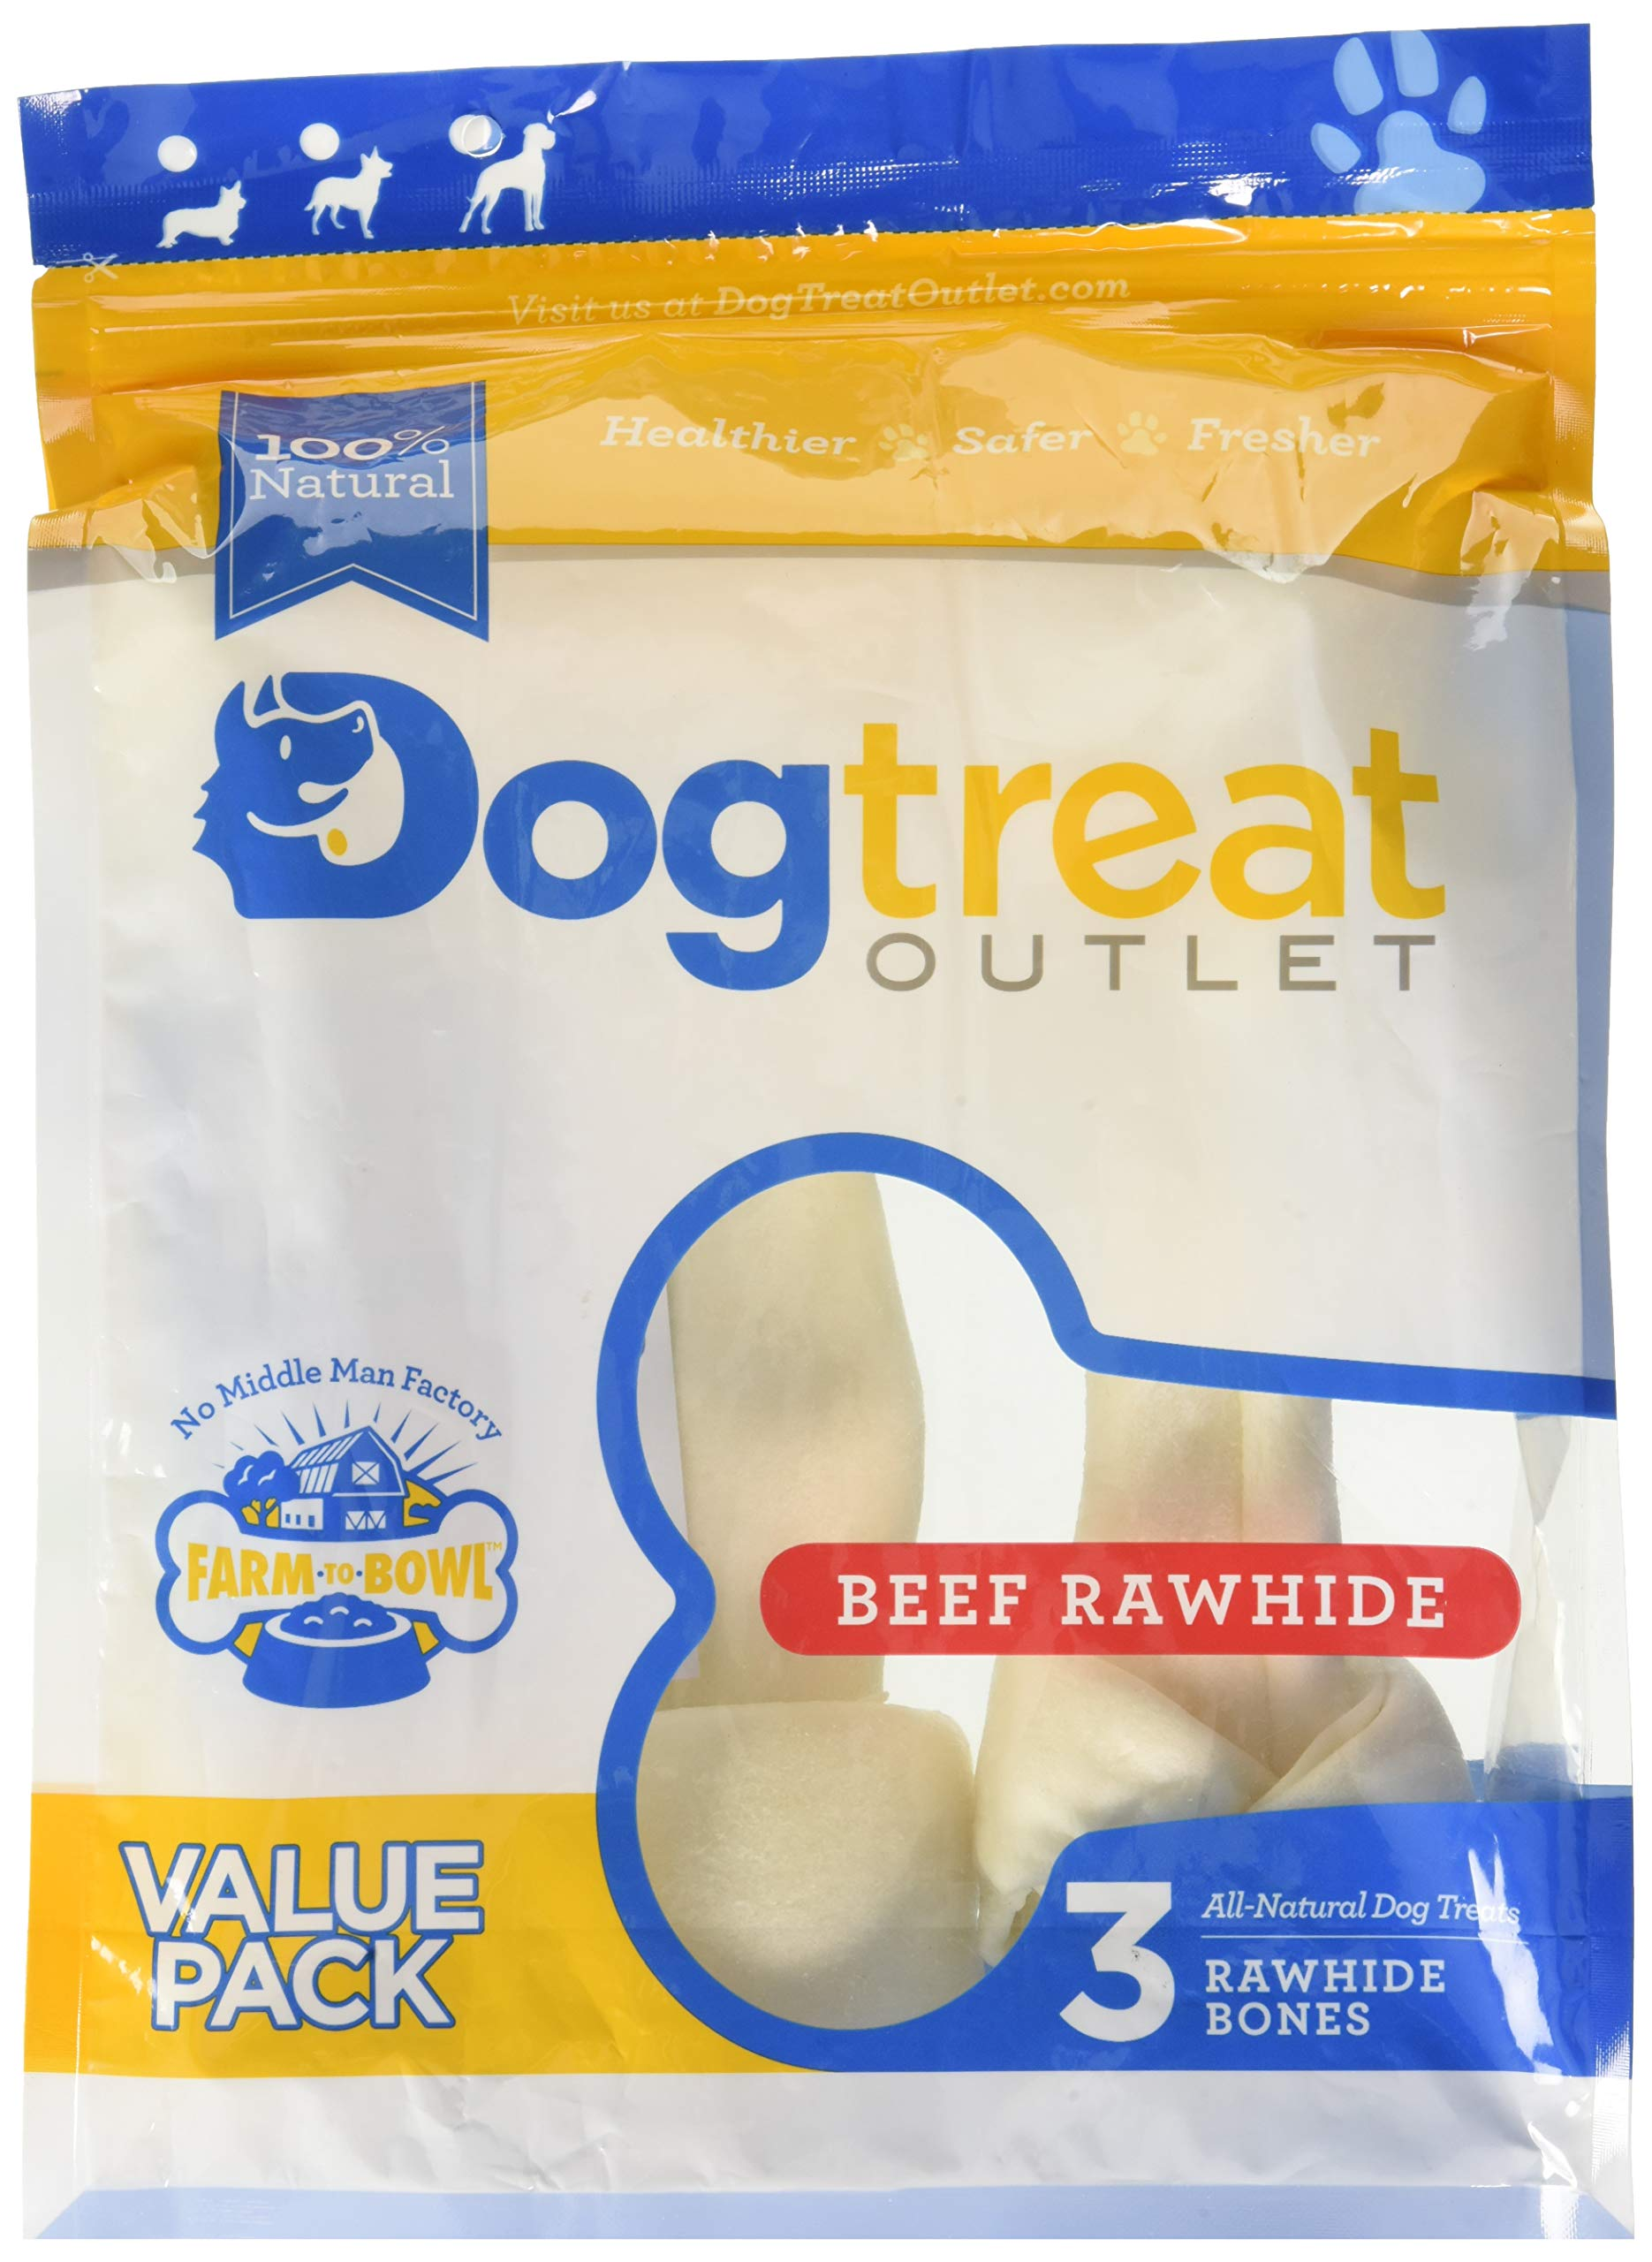 Large Sized Rawhides for Dogs, Rawhide Dog Bones are Made from Pure 100% Cattle. Long Lasting Dog Chew Designed for Aggressive Chewers Large Dogs -Dog Treat Outlet- by Dog Treat Outlet